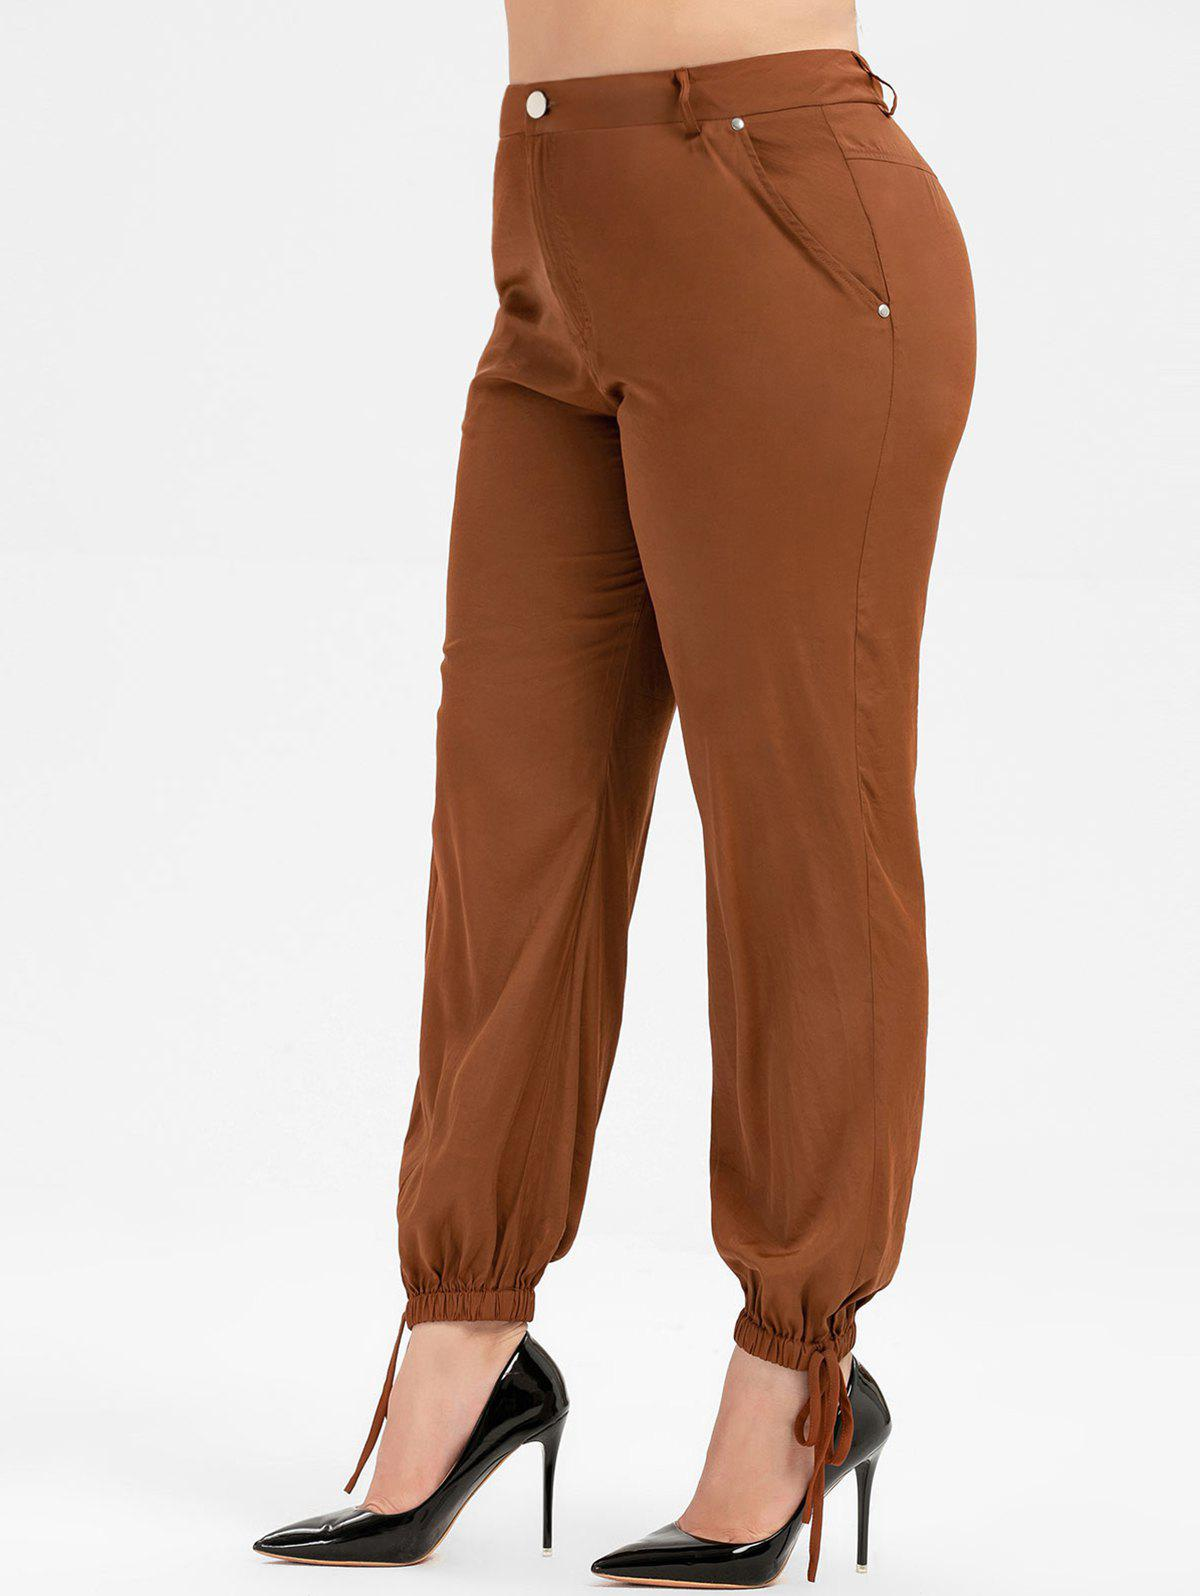 Plus Size Zip Fly Pants - BROWN 5X